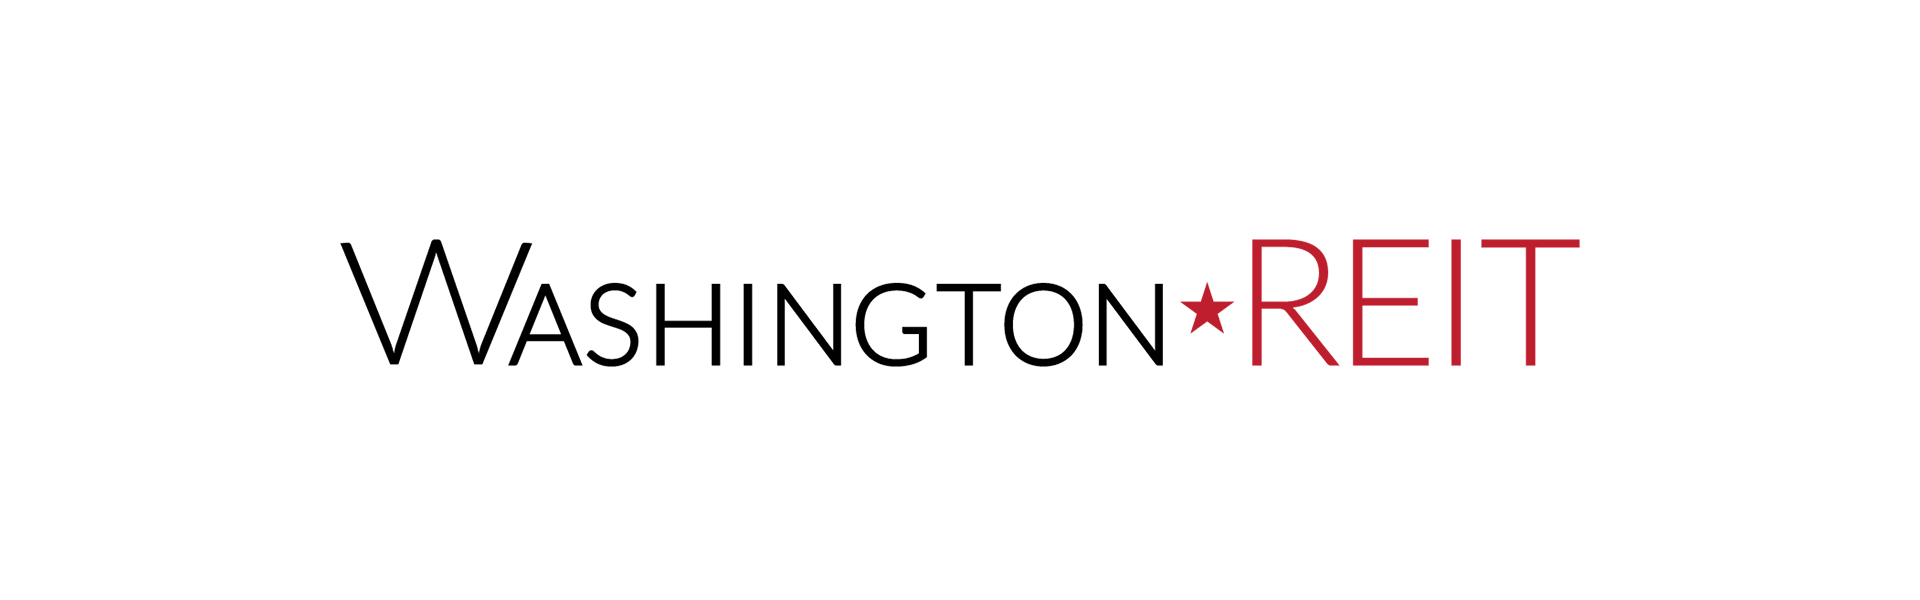 Washington REIT Engages Heritage for 'Conversations' Speaker Series